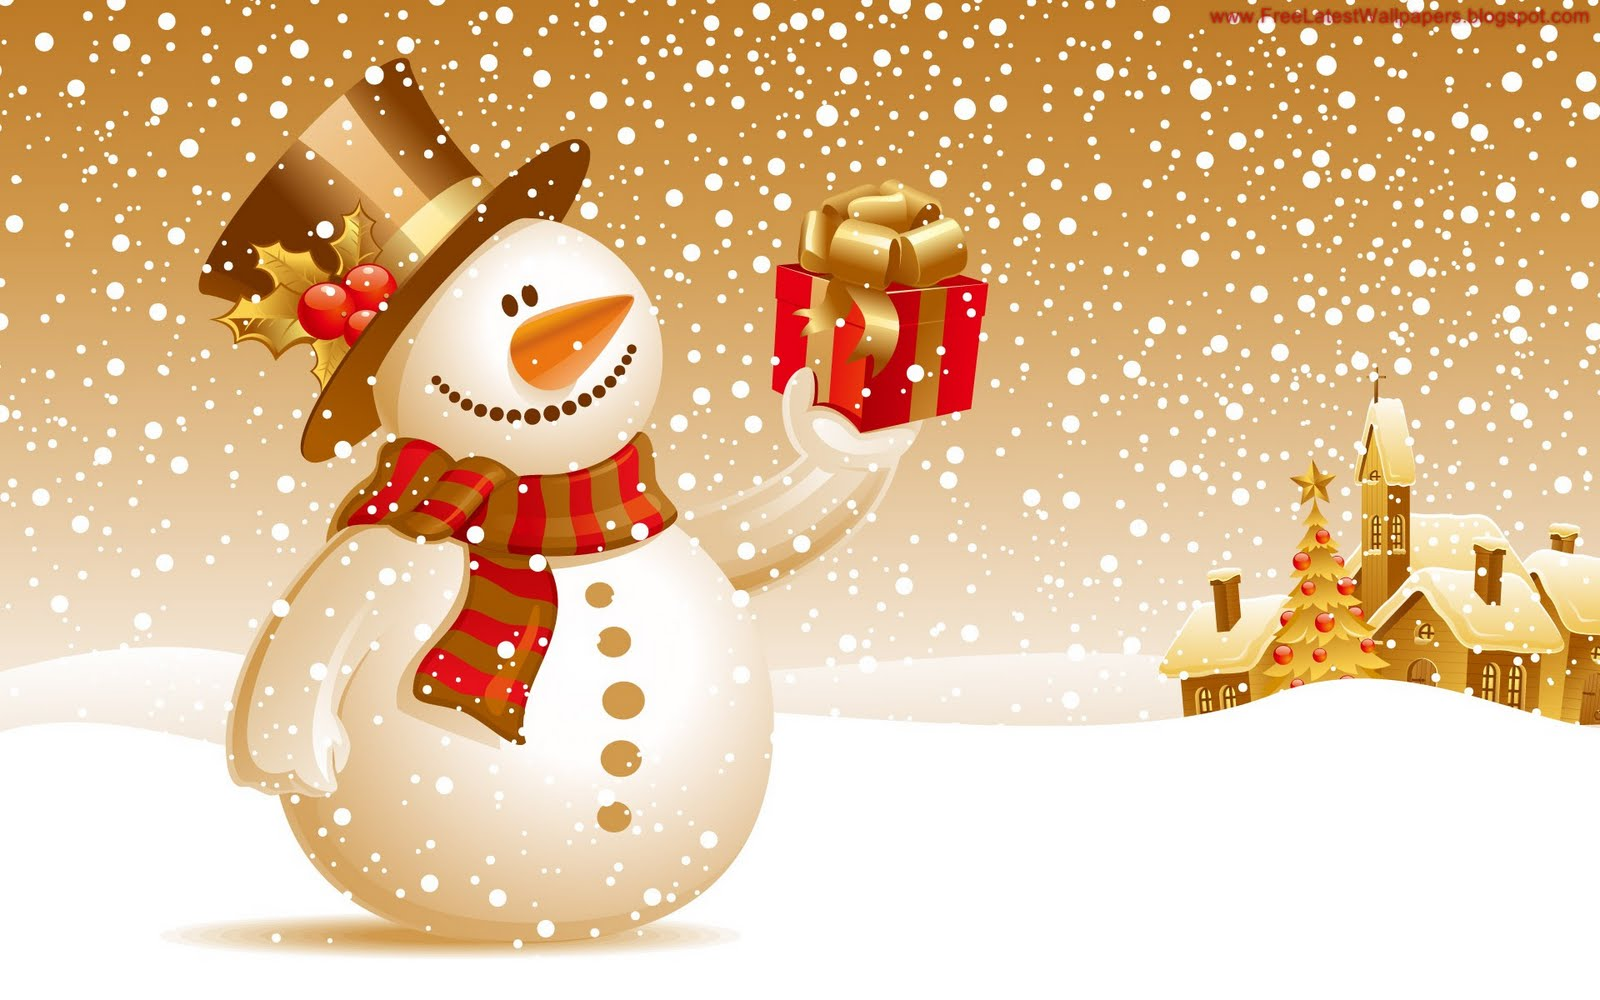 Gallery HD Wallpaper Christmas